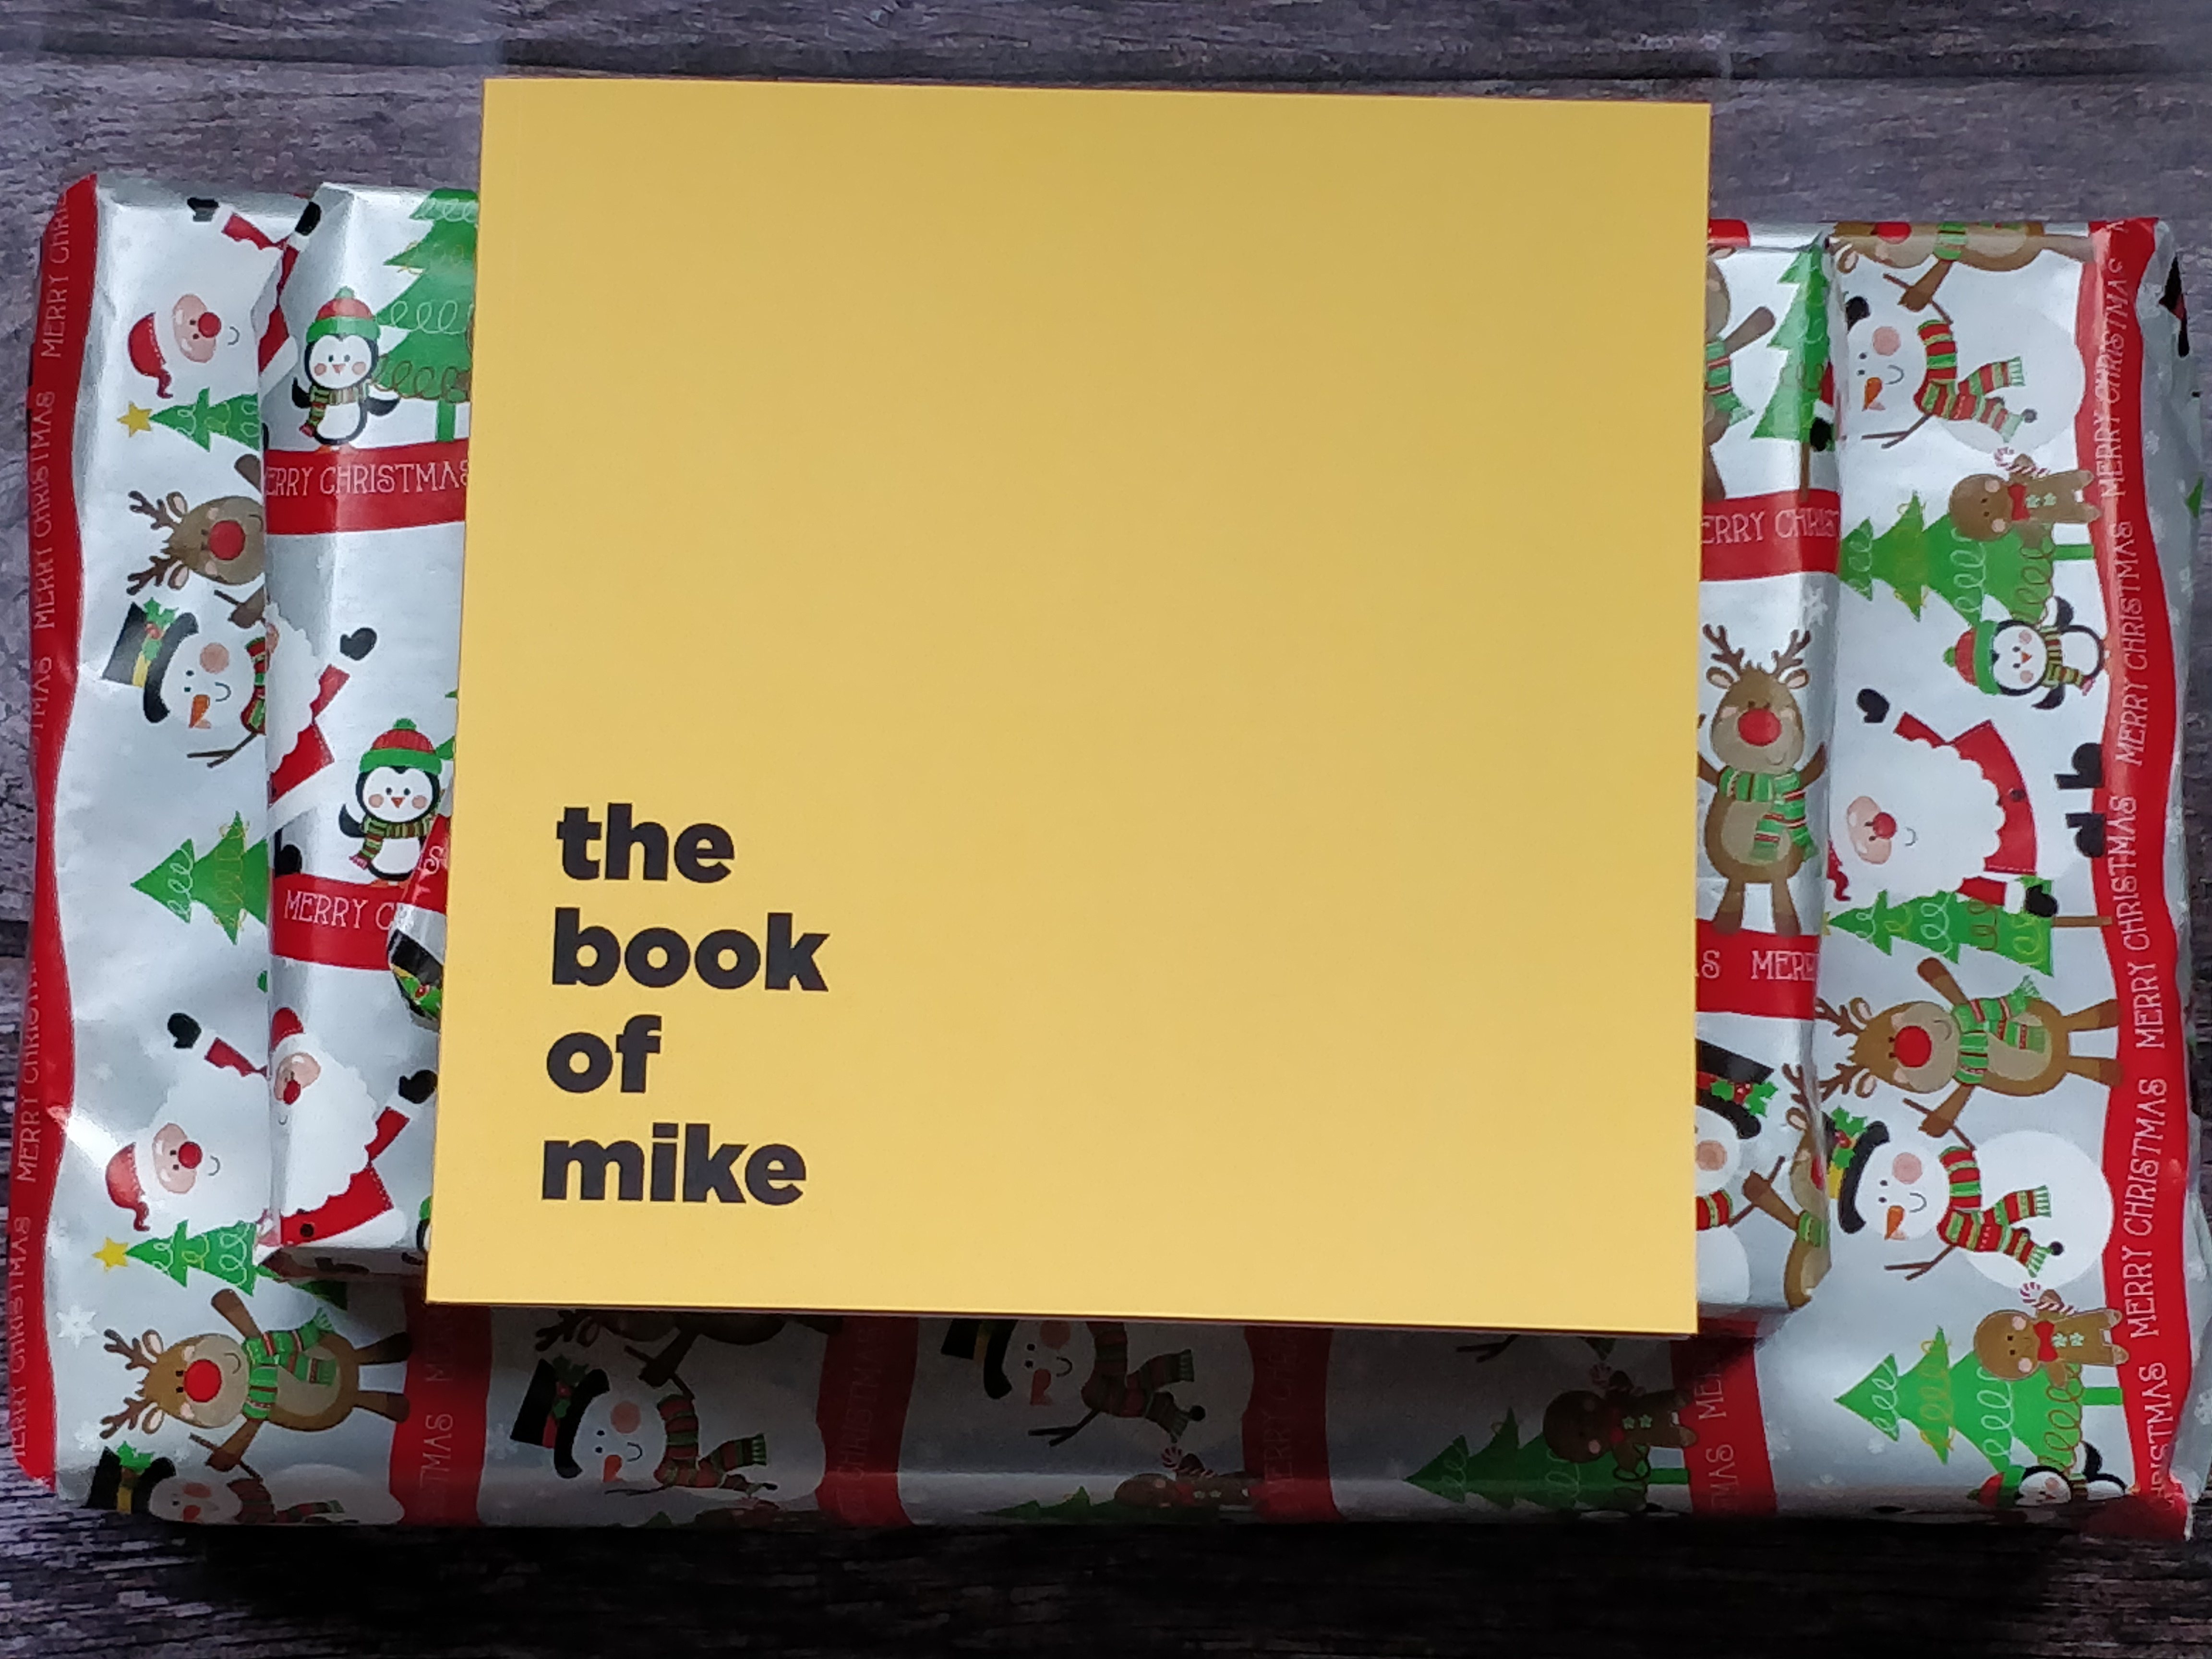 A yellow thin book on top of a pile of presents wrapped in silver and red wrapping. The book says The Book Of Mike on it.